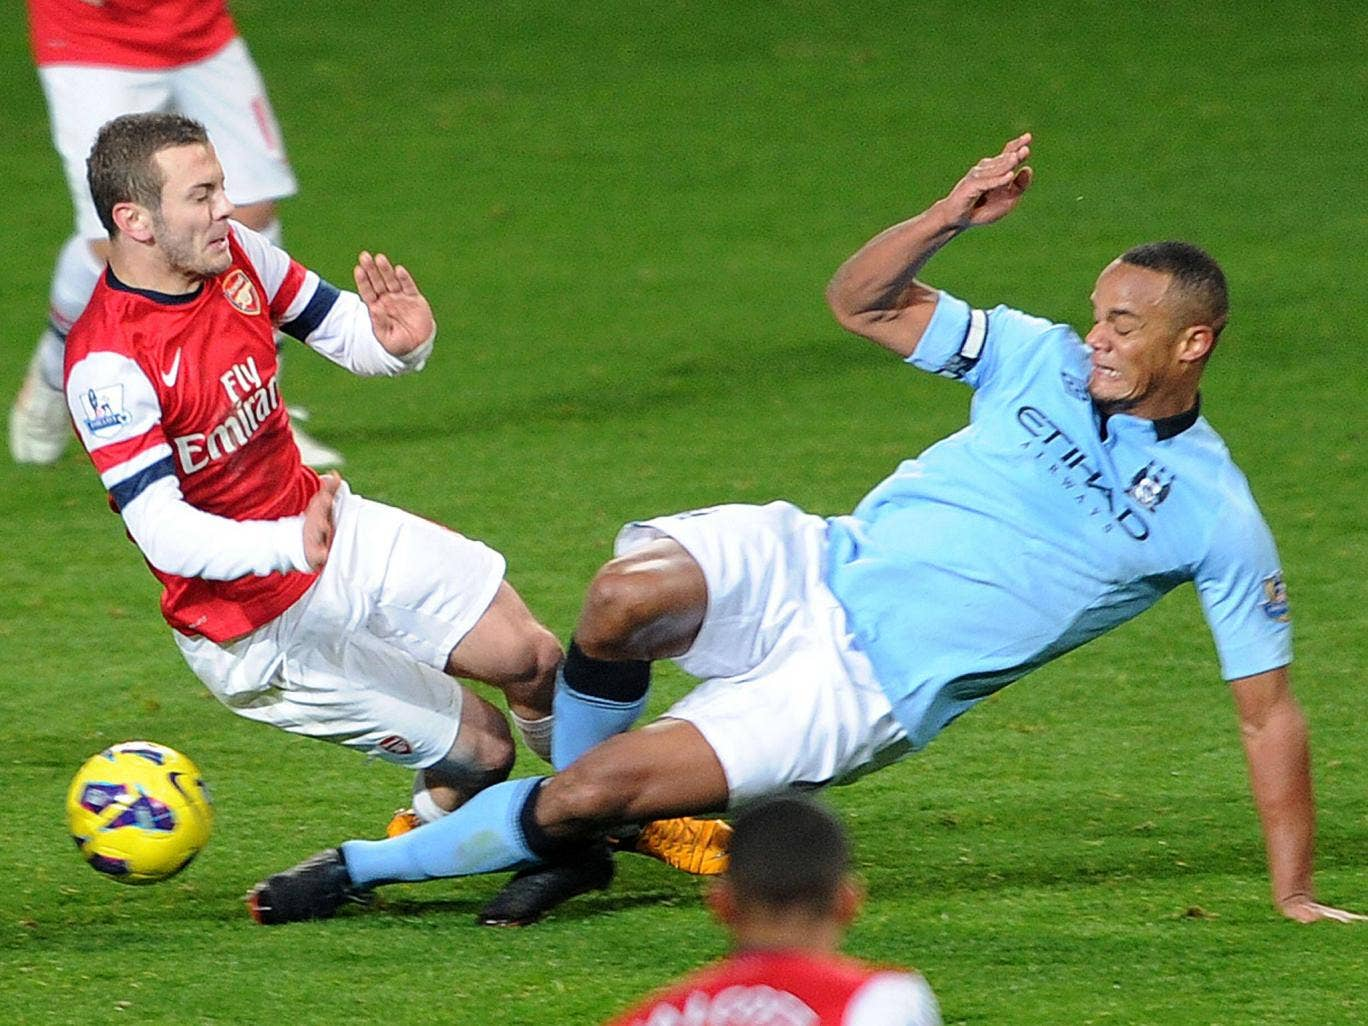 Manchester City will appeal Vincent Kompany's red card for this tackle on Jack Wilshere